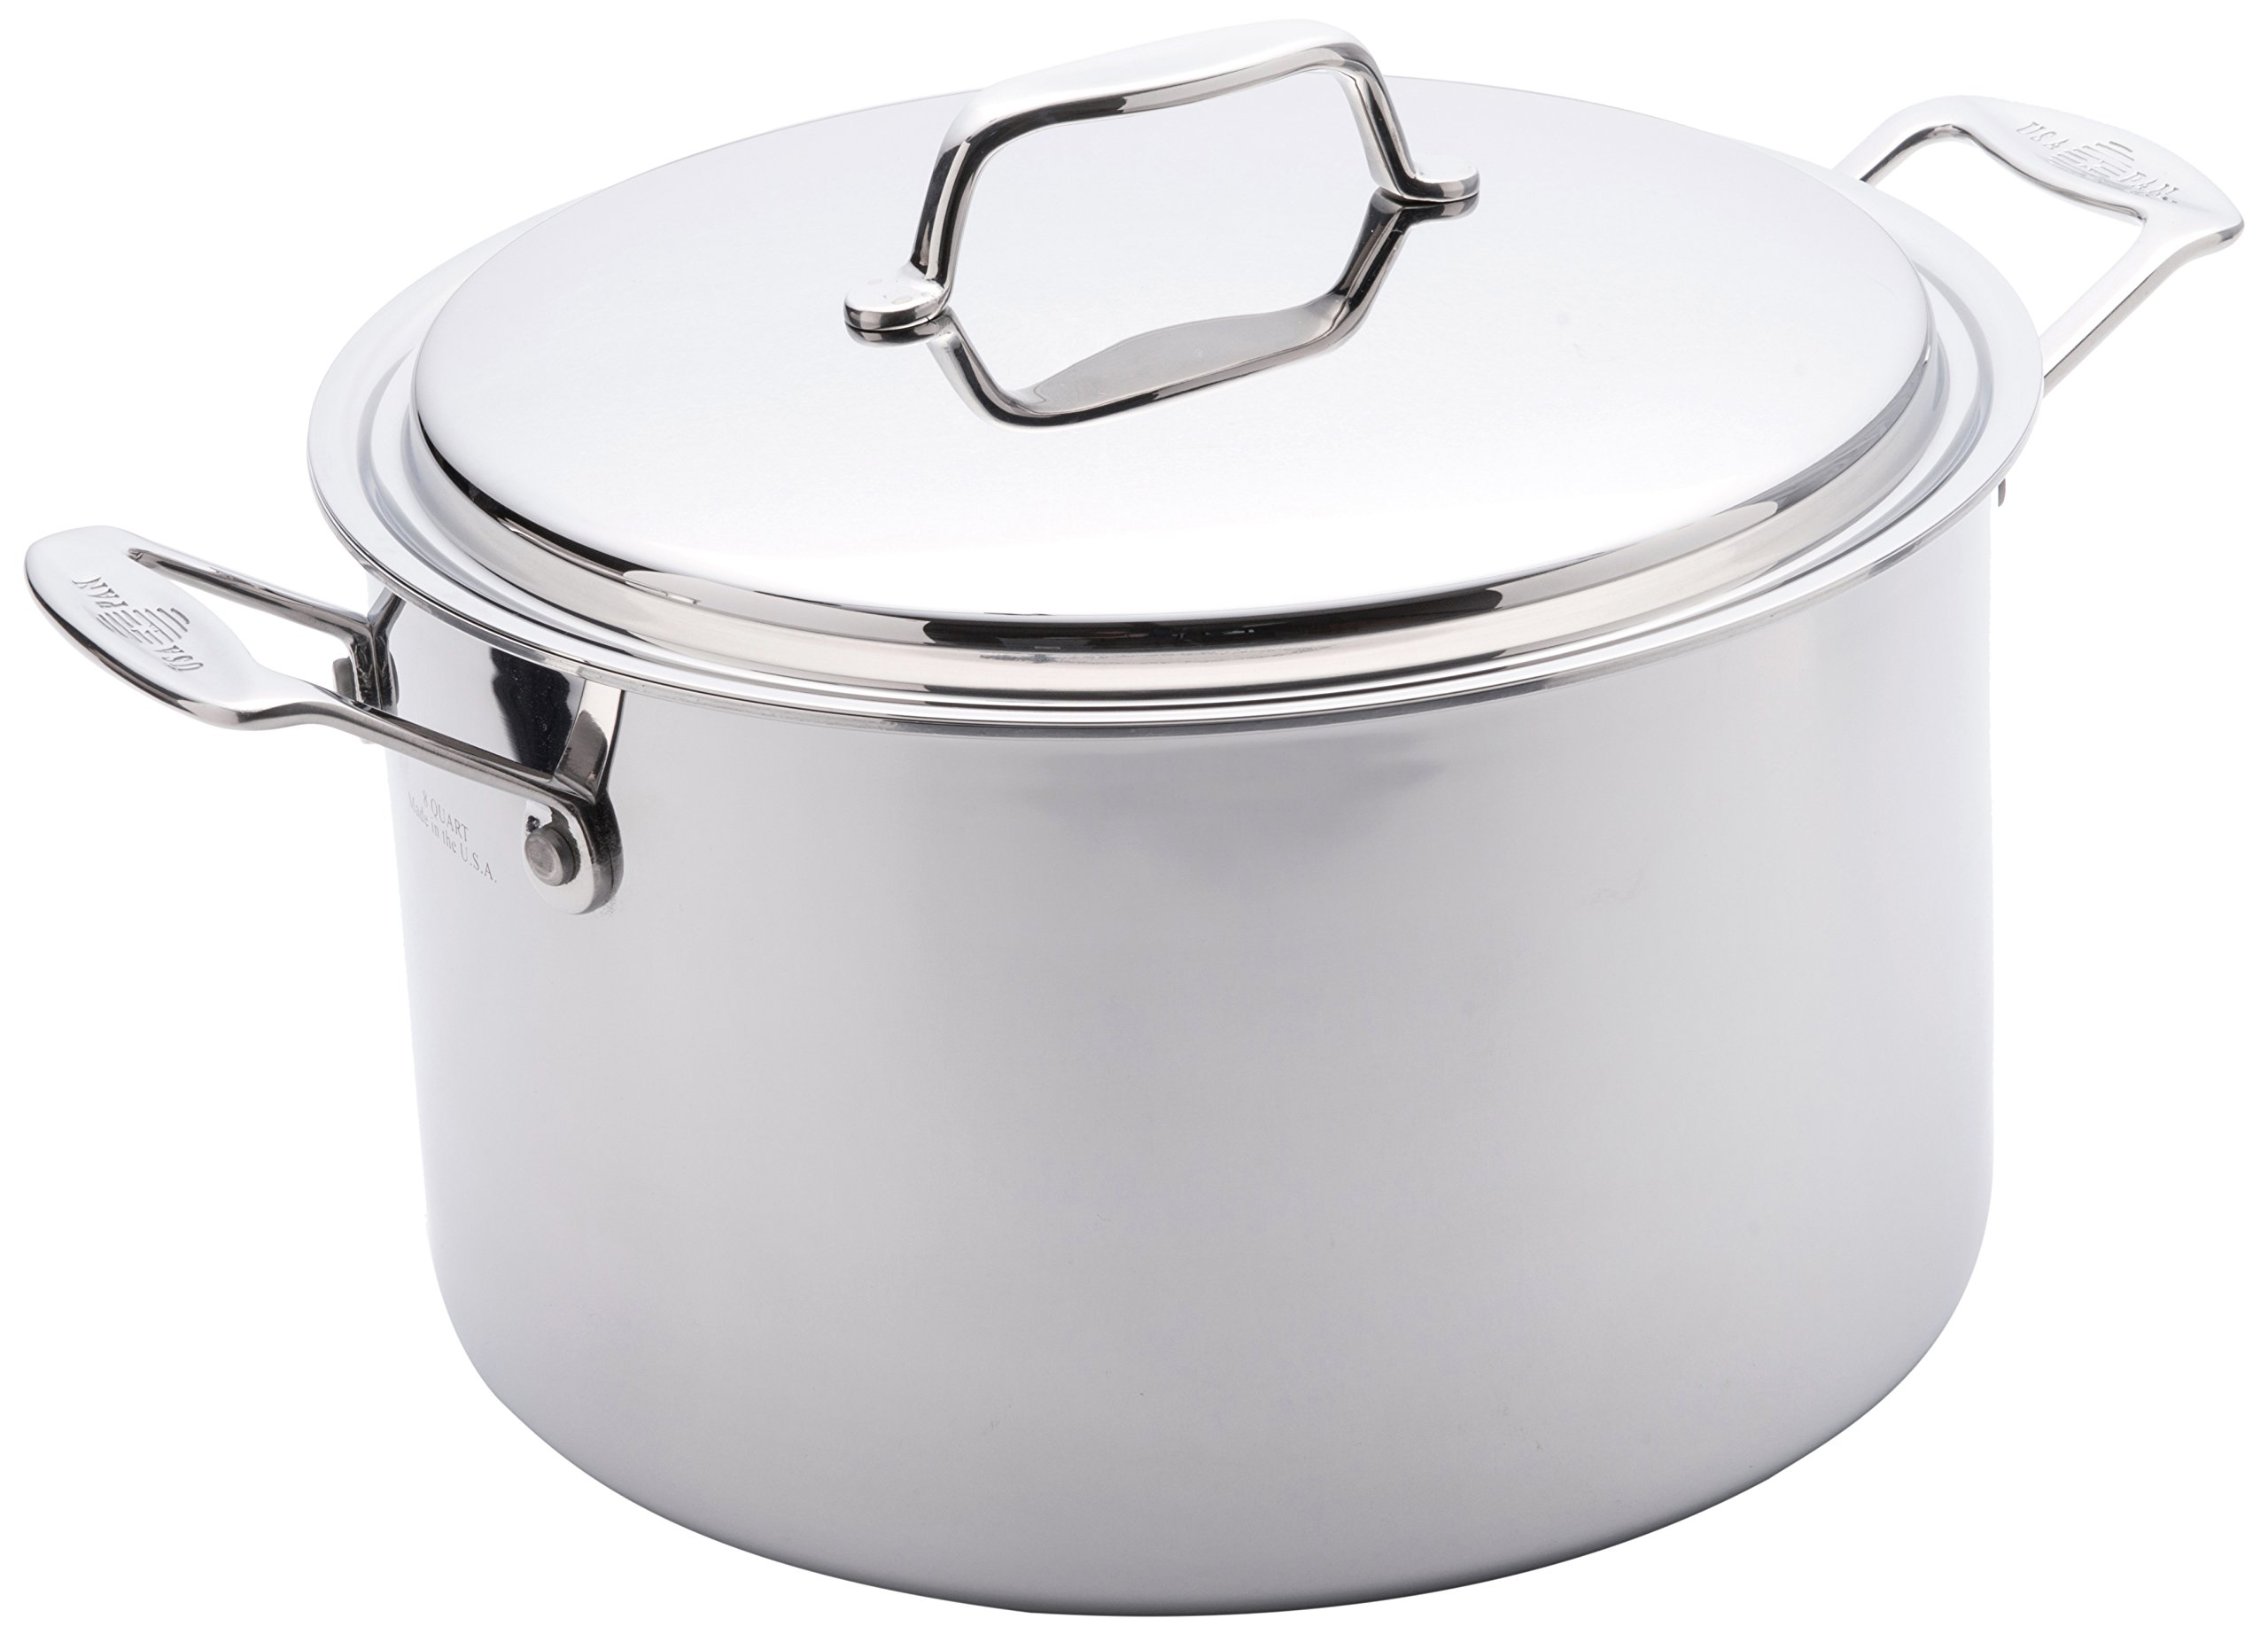 USA Pan Cookware 5-Ply Stainless Steel 8 Quart Stock Pot with Cover, Oven and Dishwasher Safe, Made in the USA